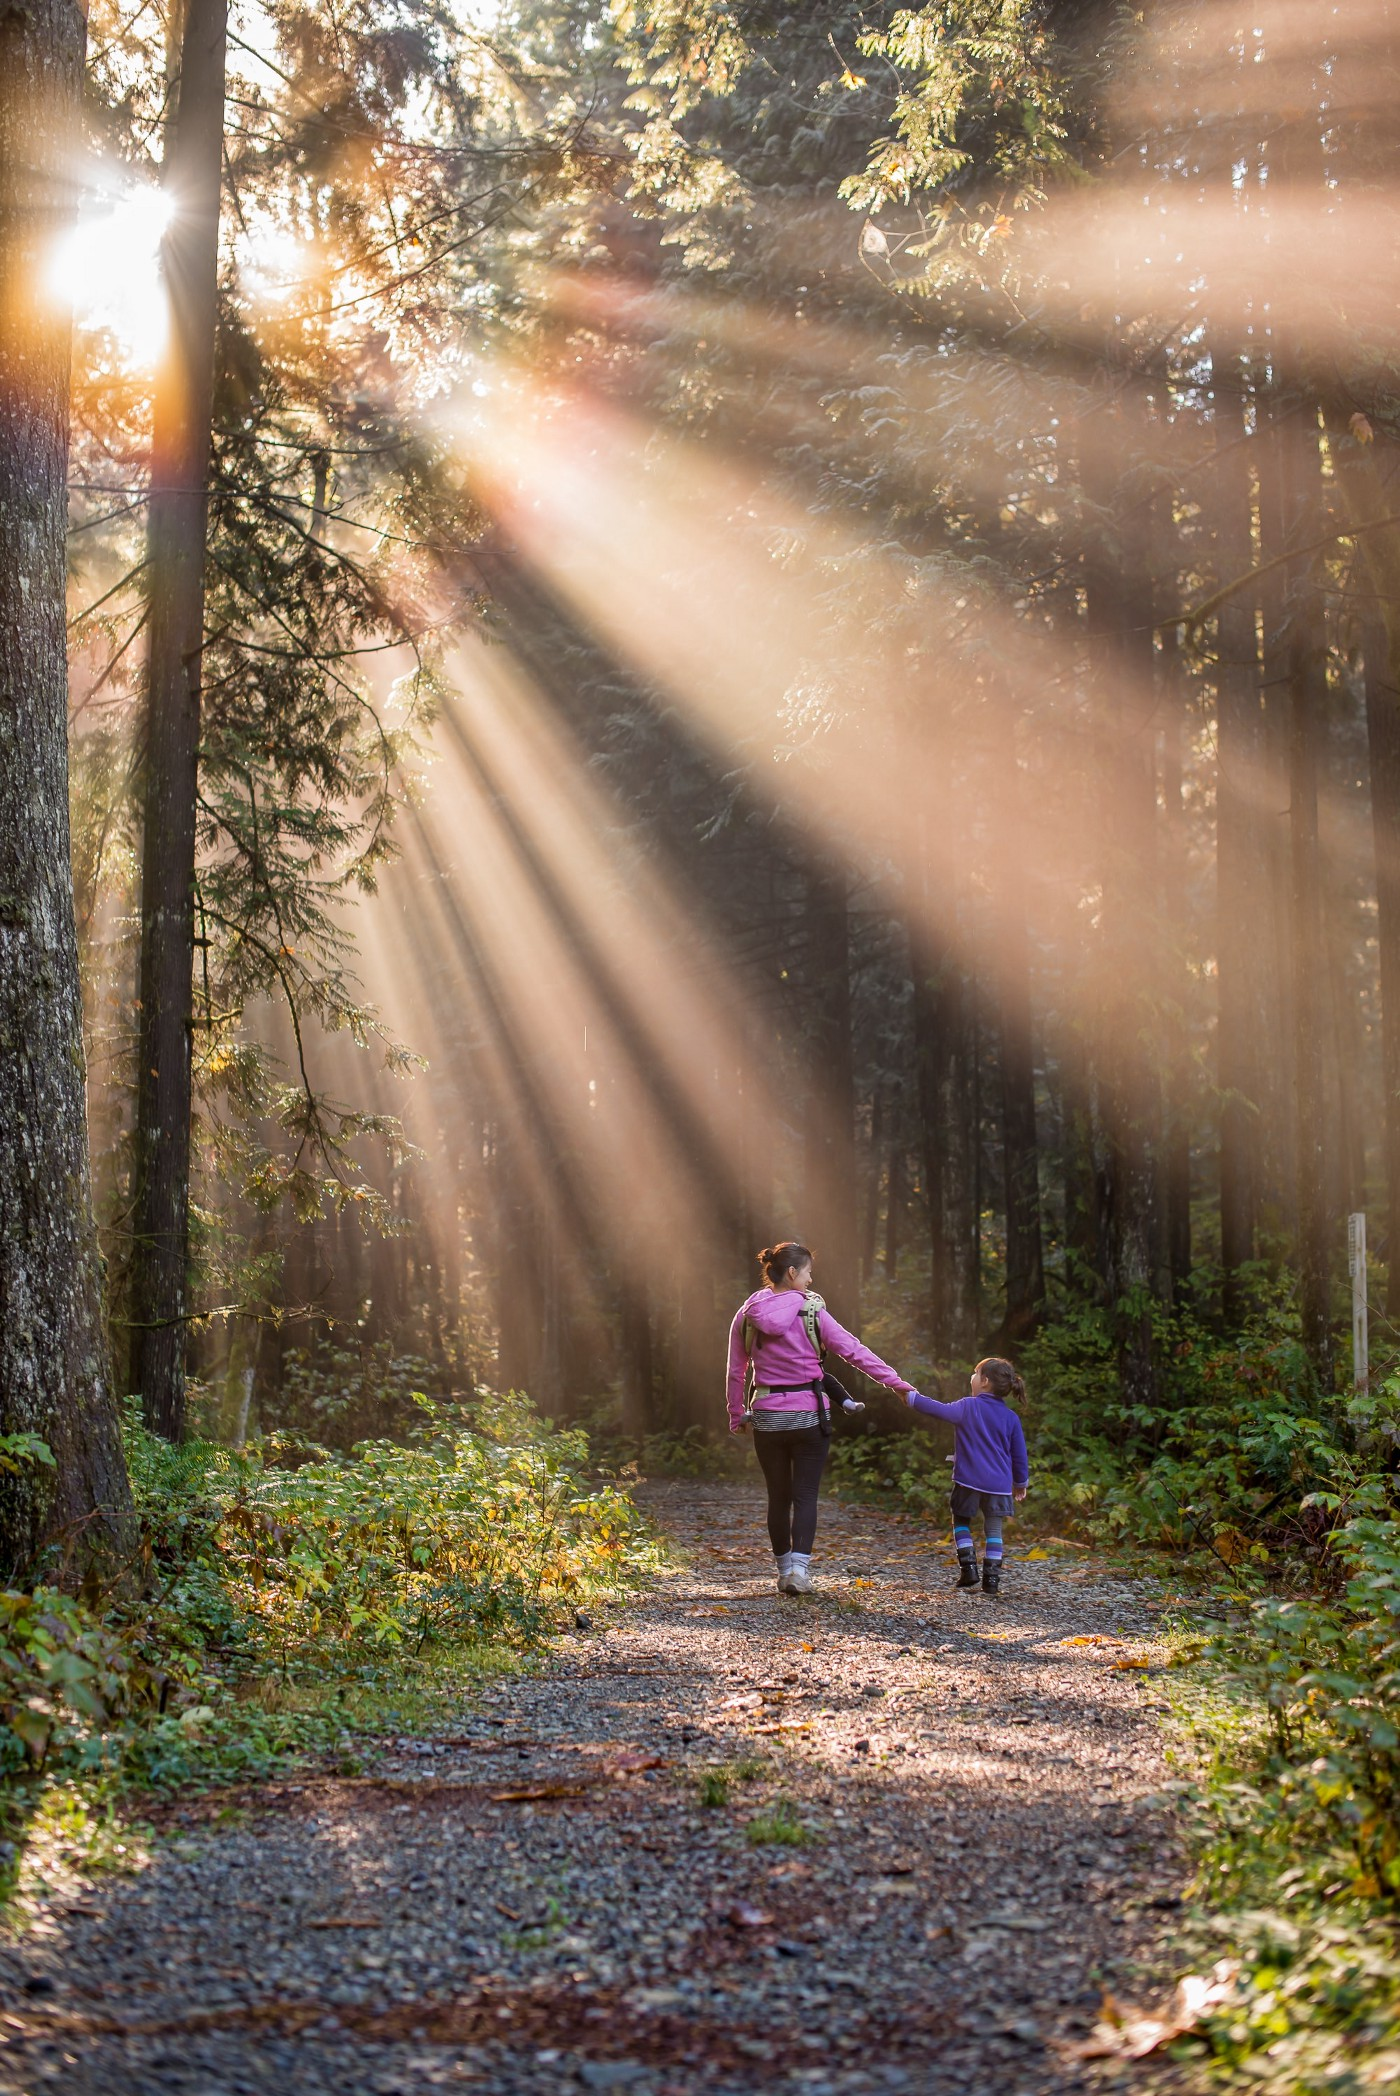 Mother and son going on a hike in the forest spending quality time together.